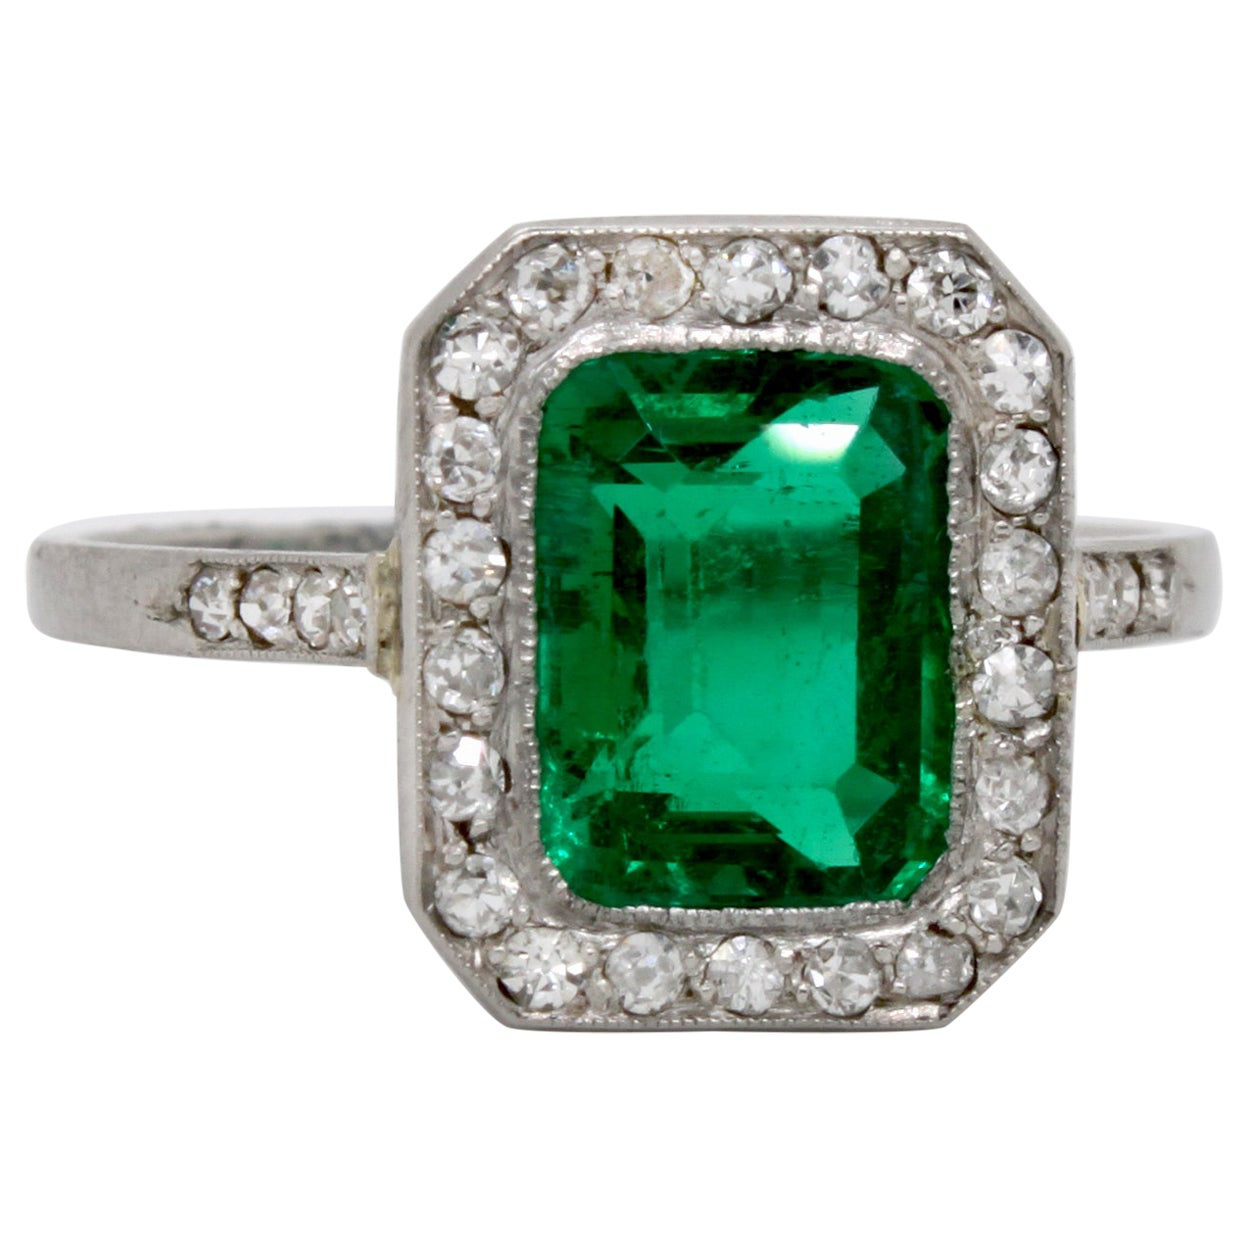 Edwardian Colombian Emerald and Diamond Ring, circa 1910s